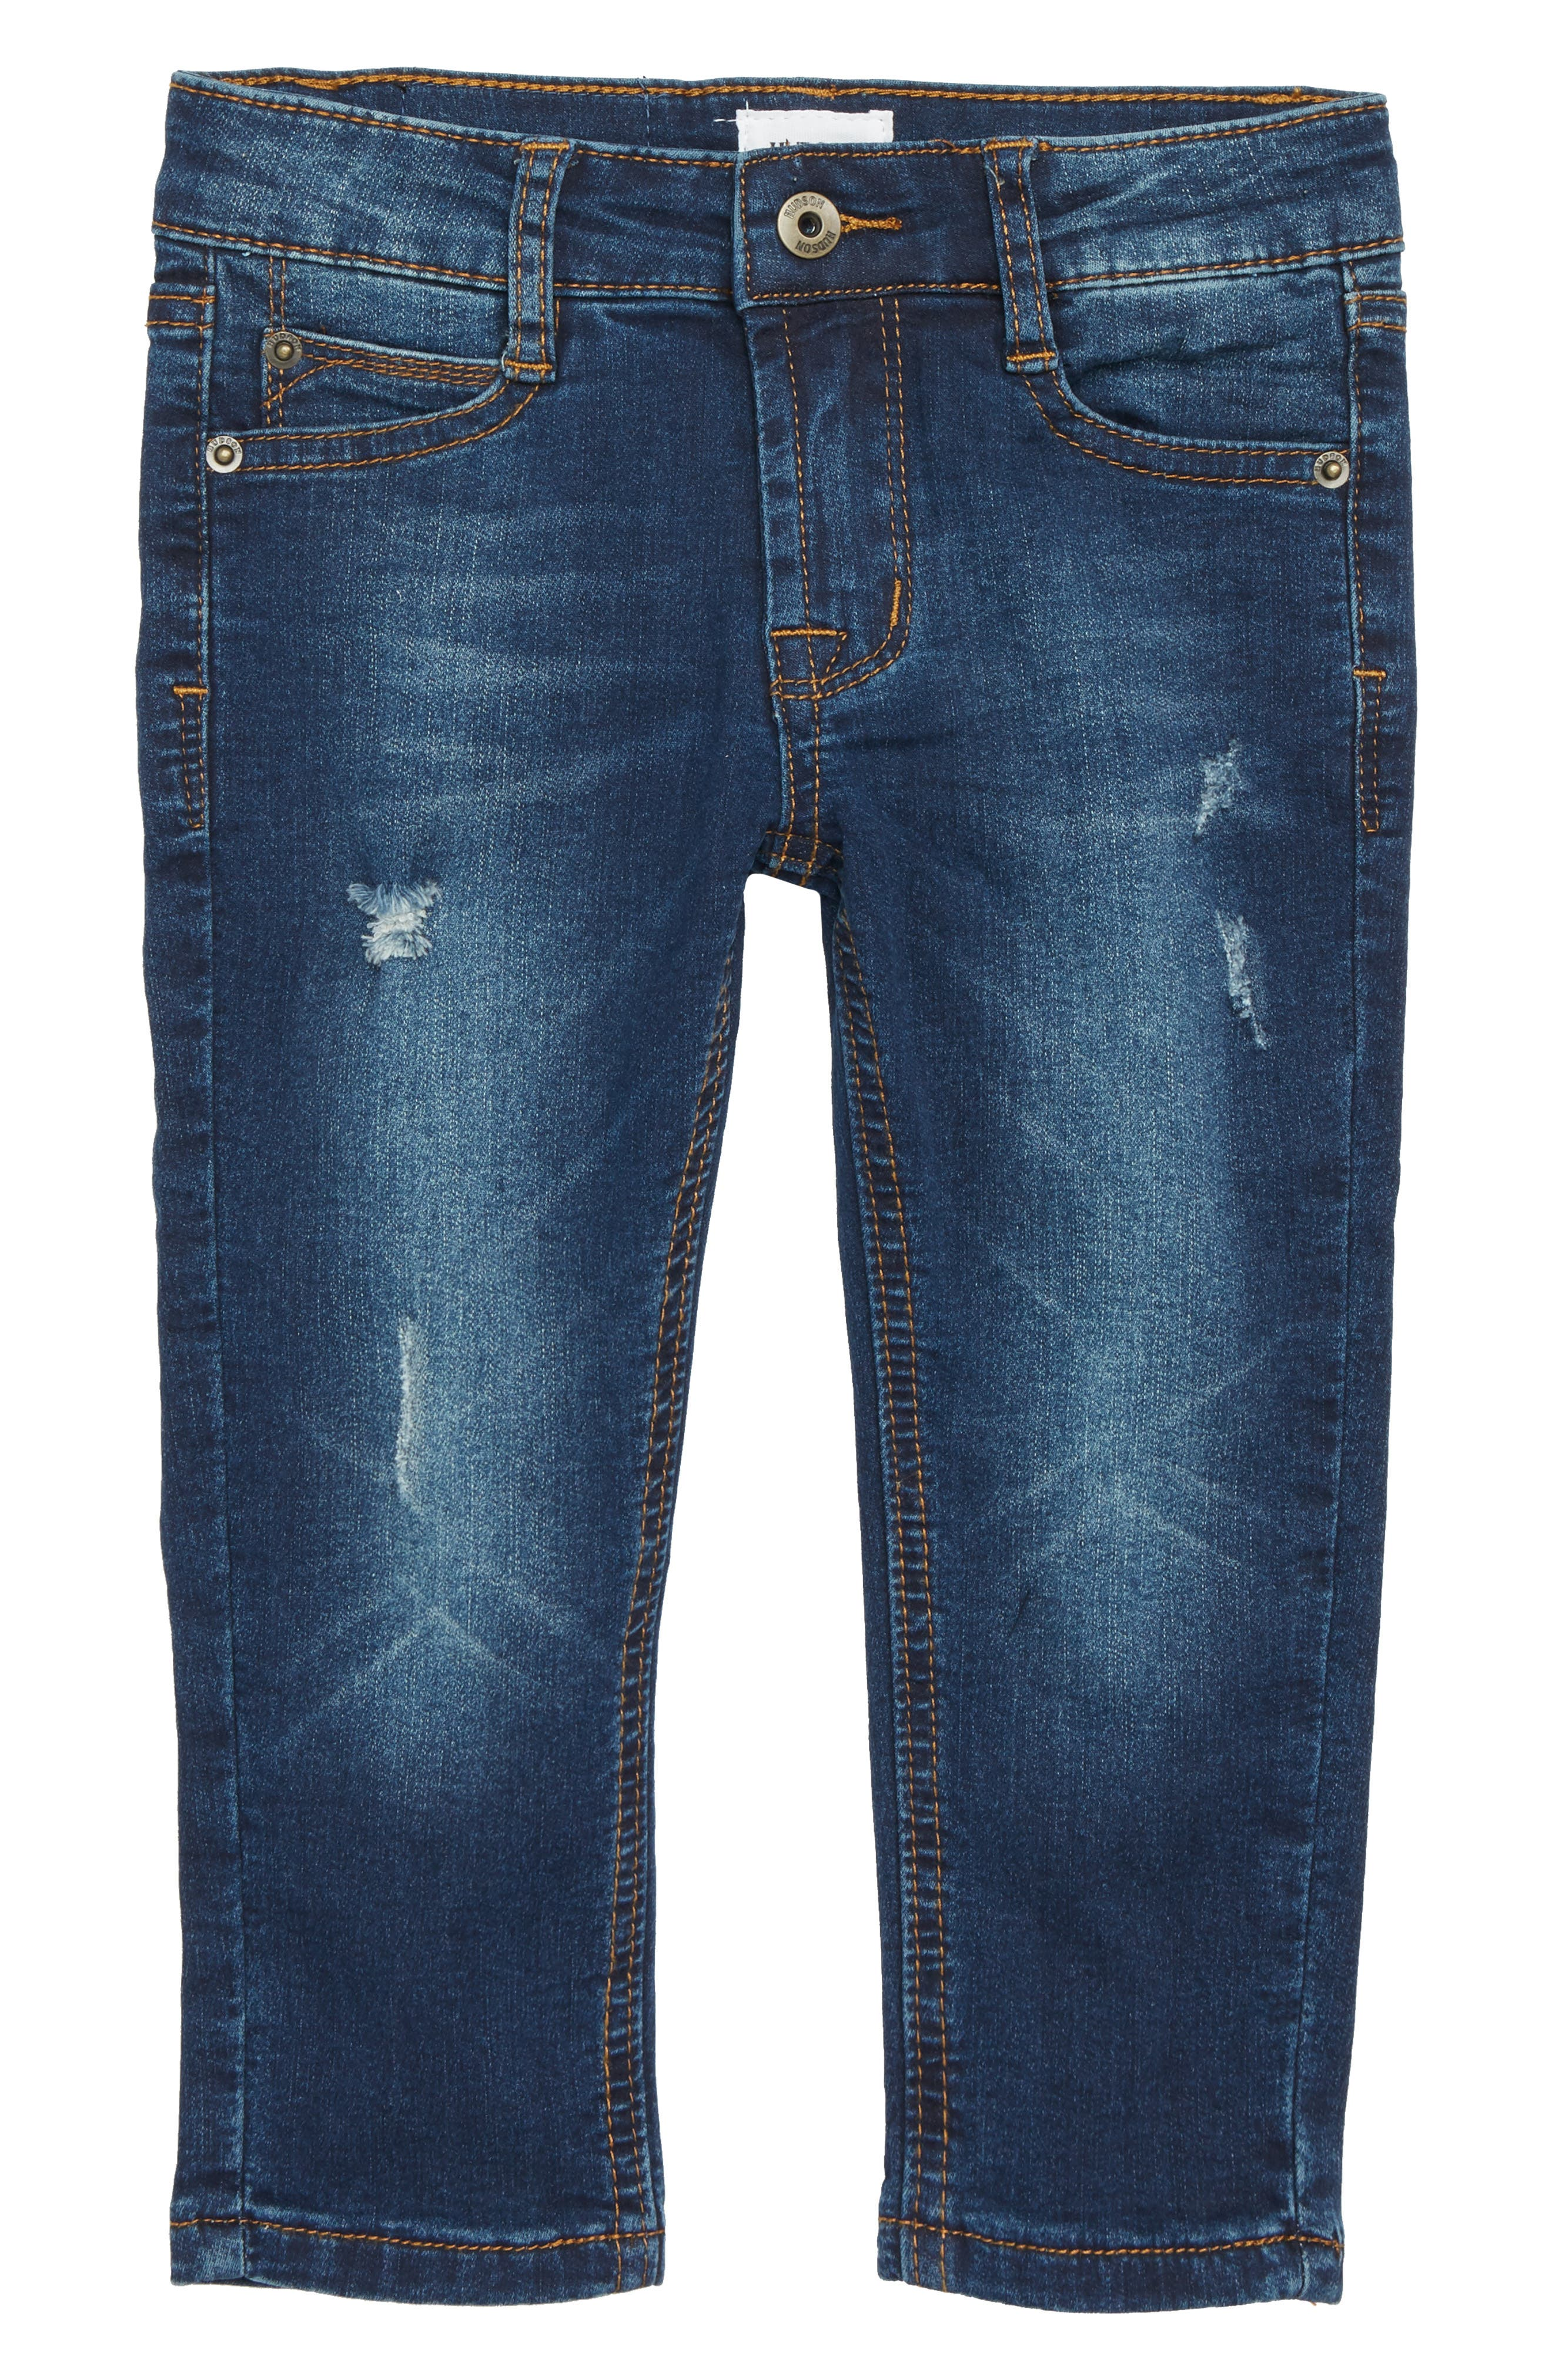 Jude Slim Fit Skinny Jeans,                         Main,                         color, Filly